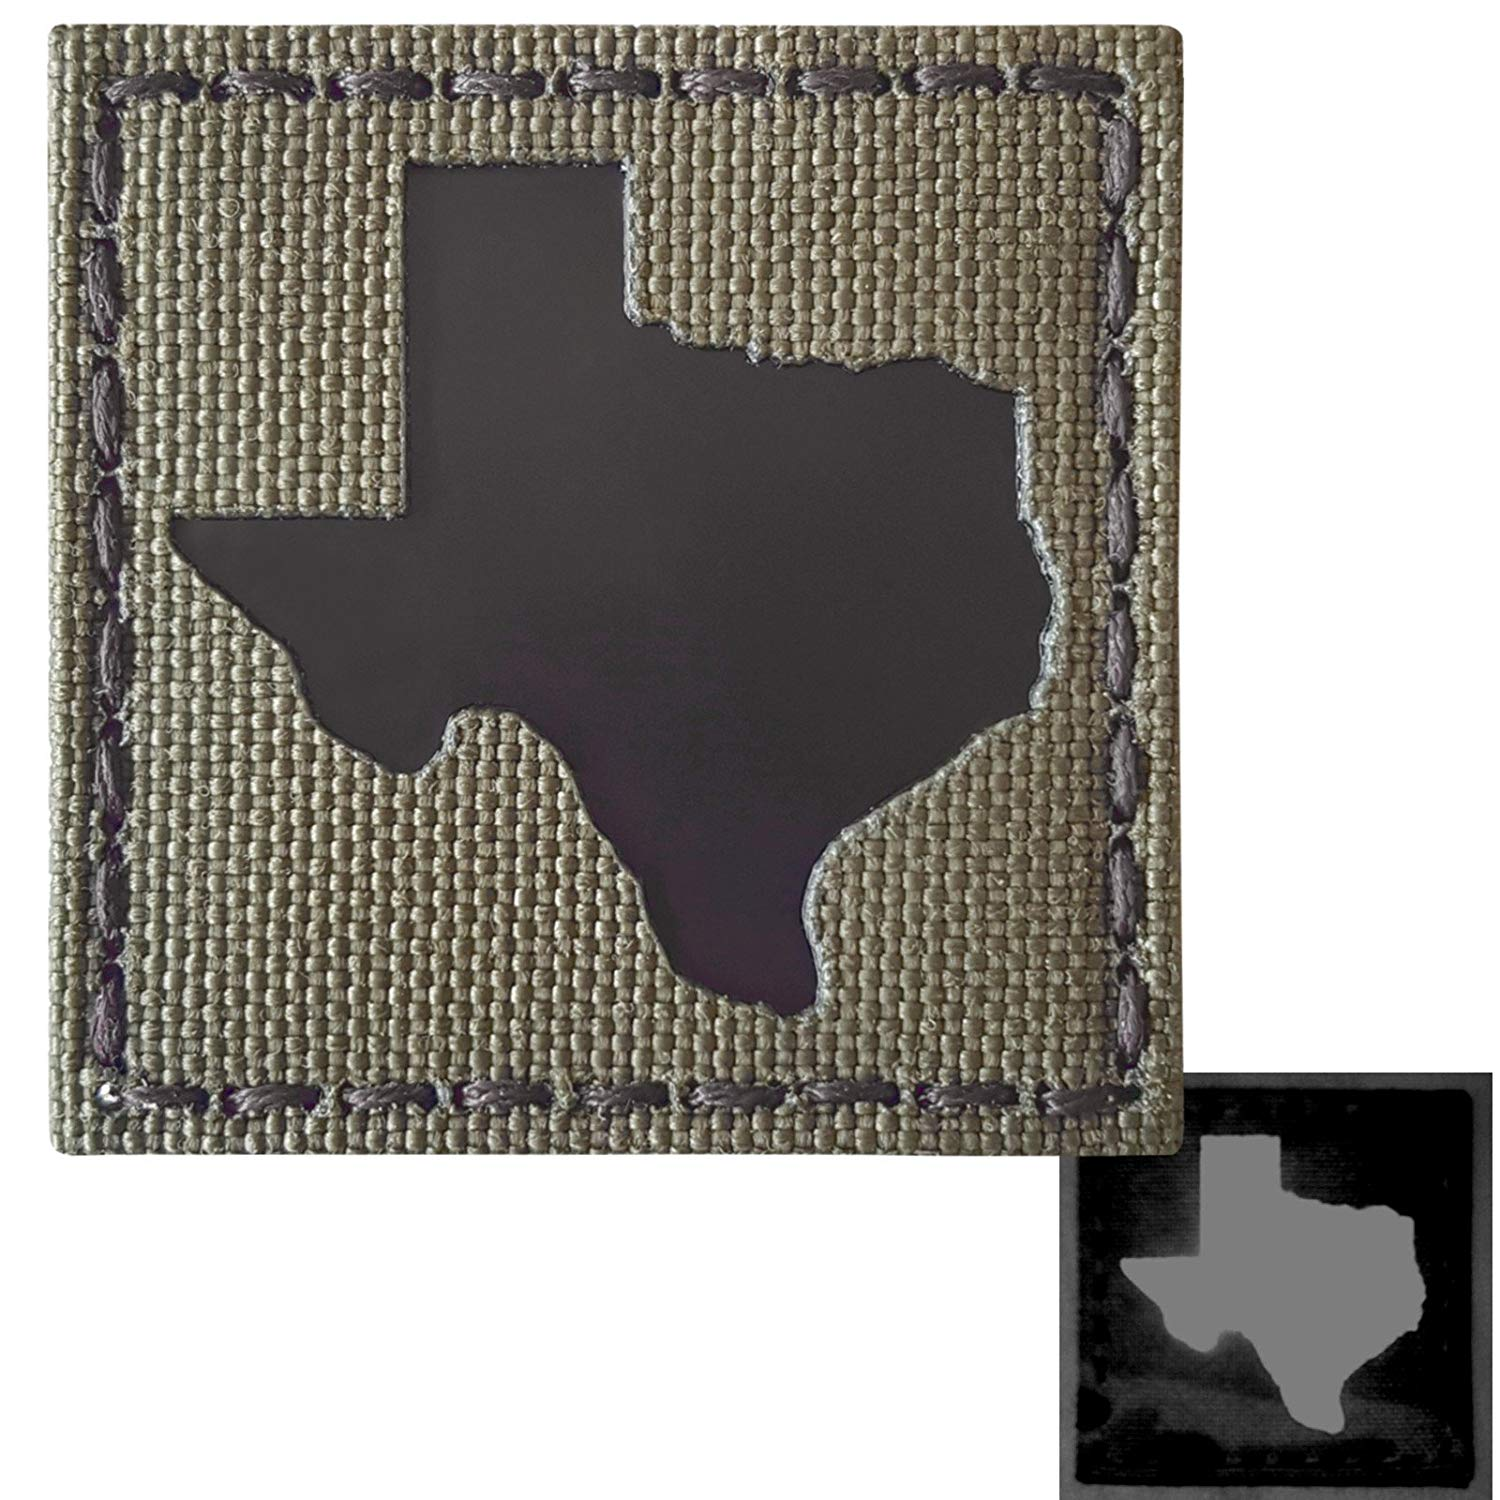 Ranger Green Texas Infrared IR 2x2 Laser Reflective Tactical Morale Fastener Patch